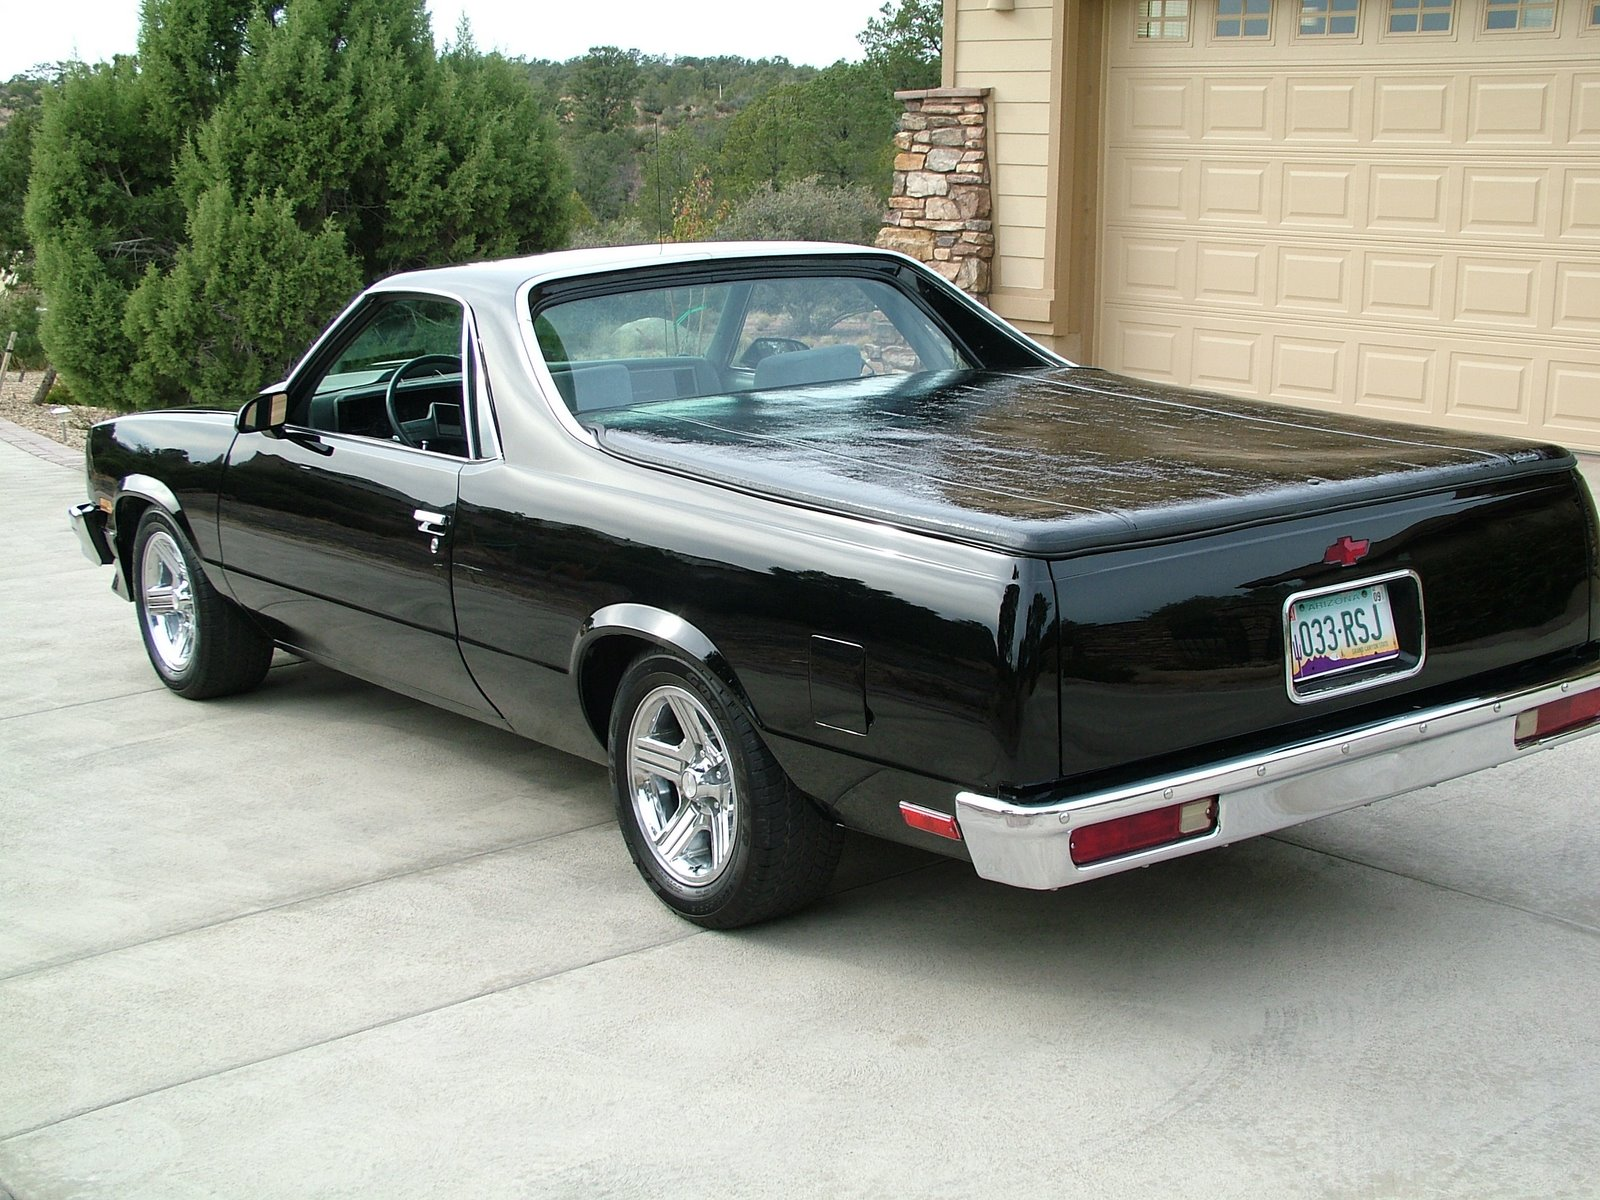 Chevrolet El Camino photo 105482